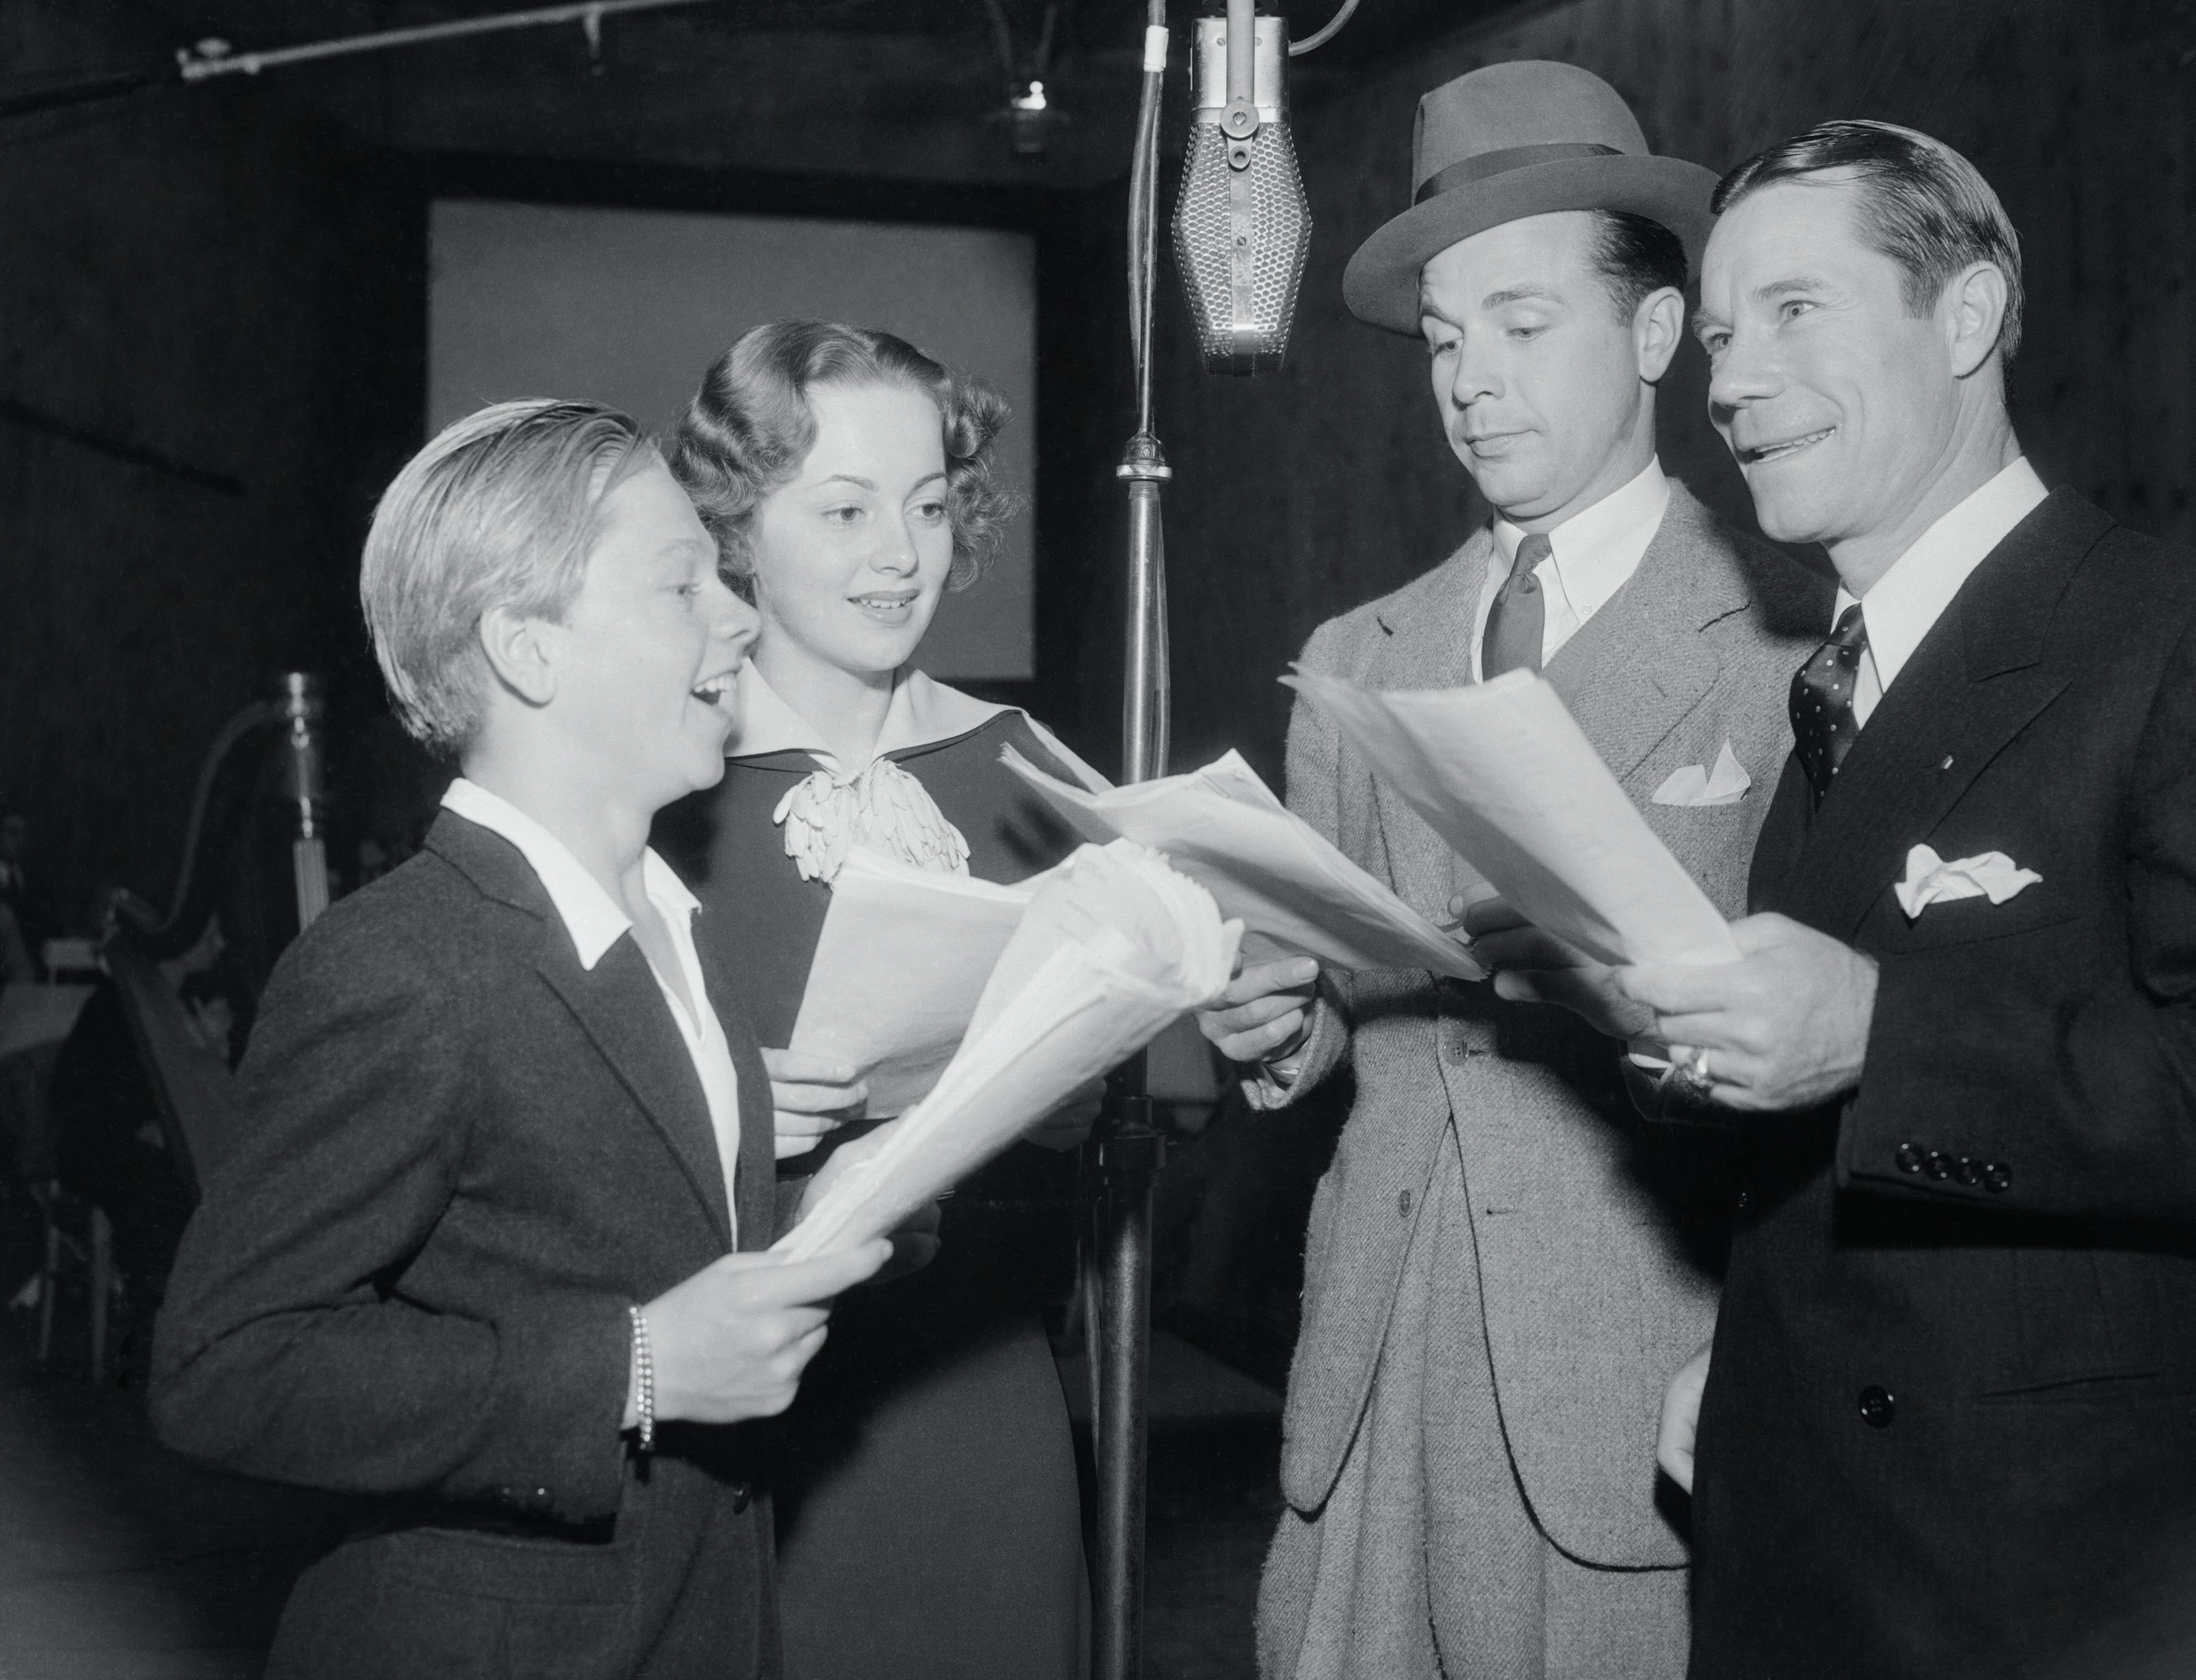 From left: Mickey Rooney, Olivia De Havilland, Dick Powell and Joe E. Brown under the microphone at the nation-wide broadcast from Los Angeles of A Midsummer Night's Dream on Oct. 10, 1935, in Los Angeles.